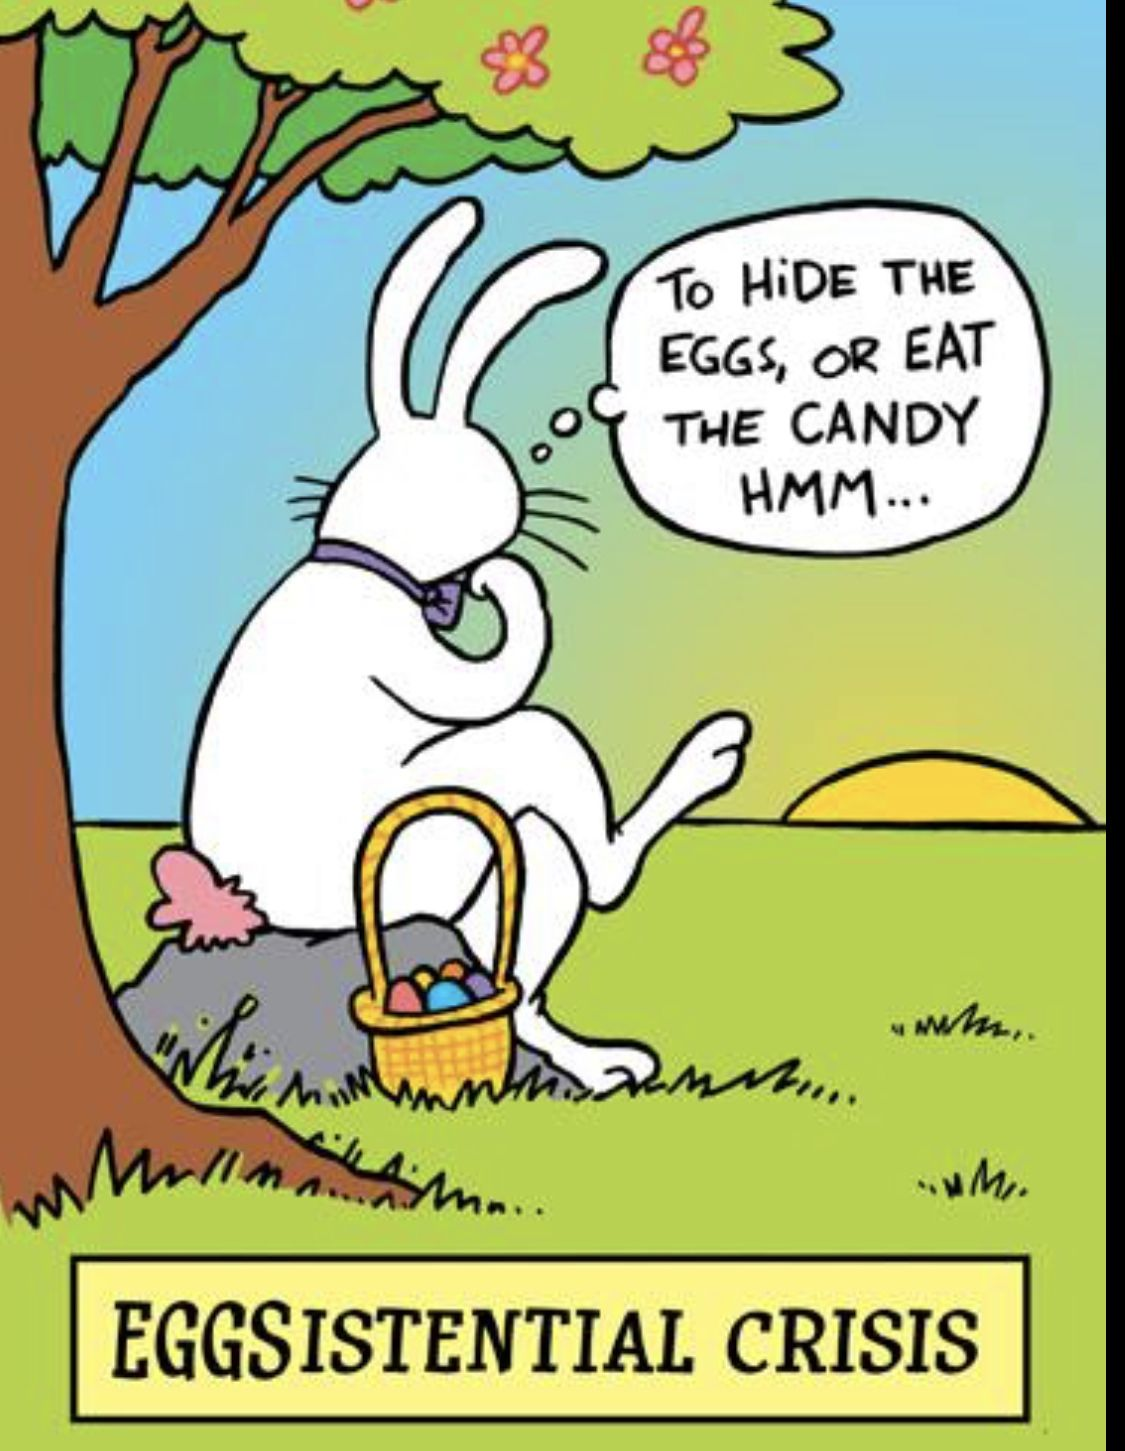 Pin by Kelley Patrick'Odriozola on EASTER Easter humor